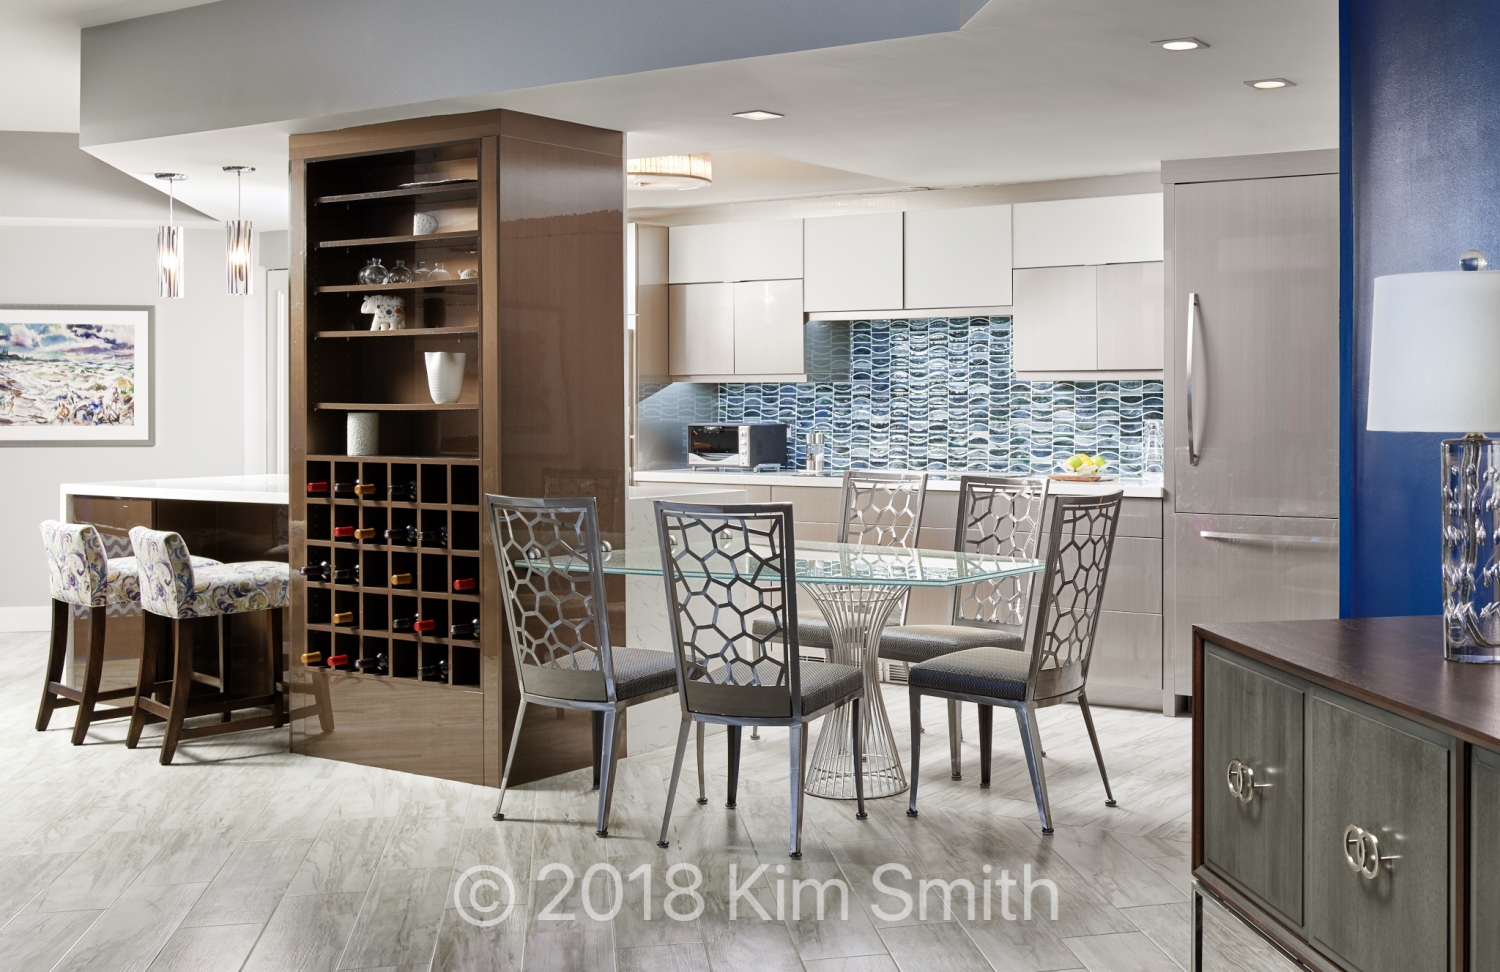 As A Former Interior Designer, It Stood Out To Me That This Particular Hue  Was Incredibly Consistent So Images Needed To Be Properly Color Balanced  For A ...